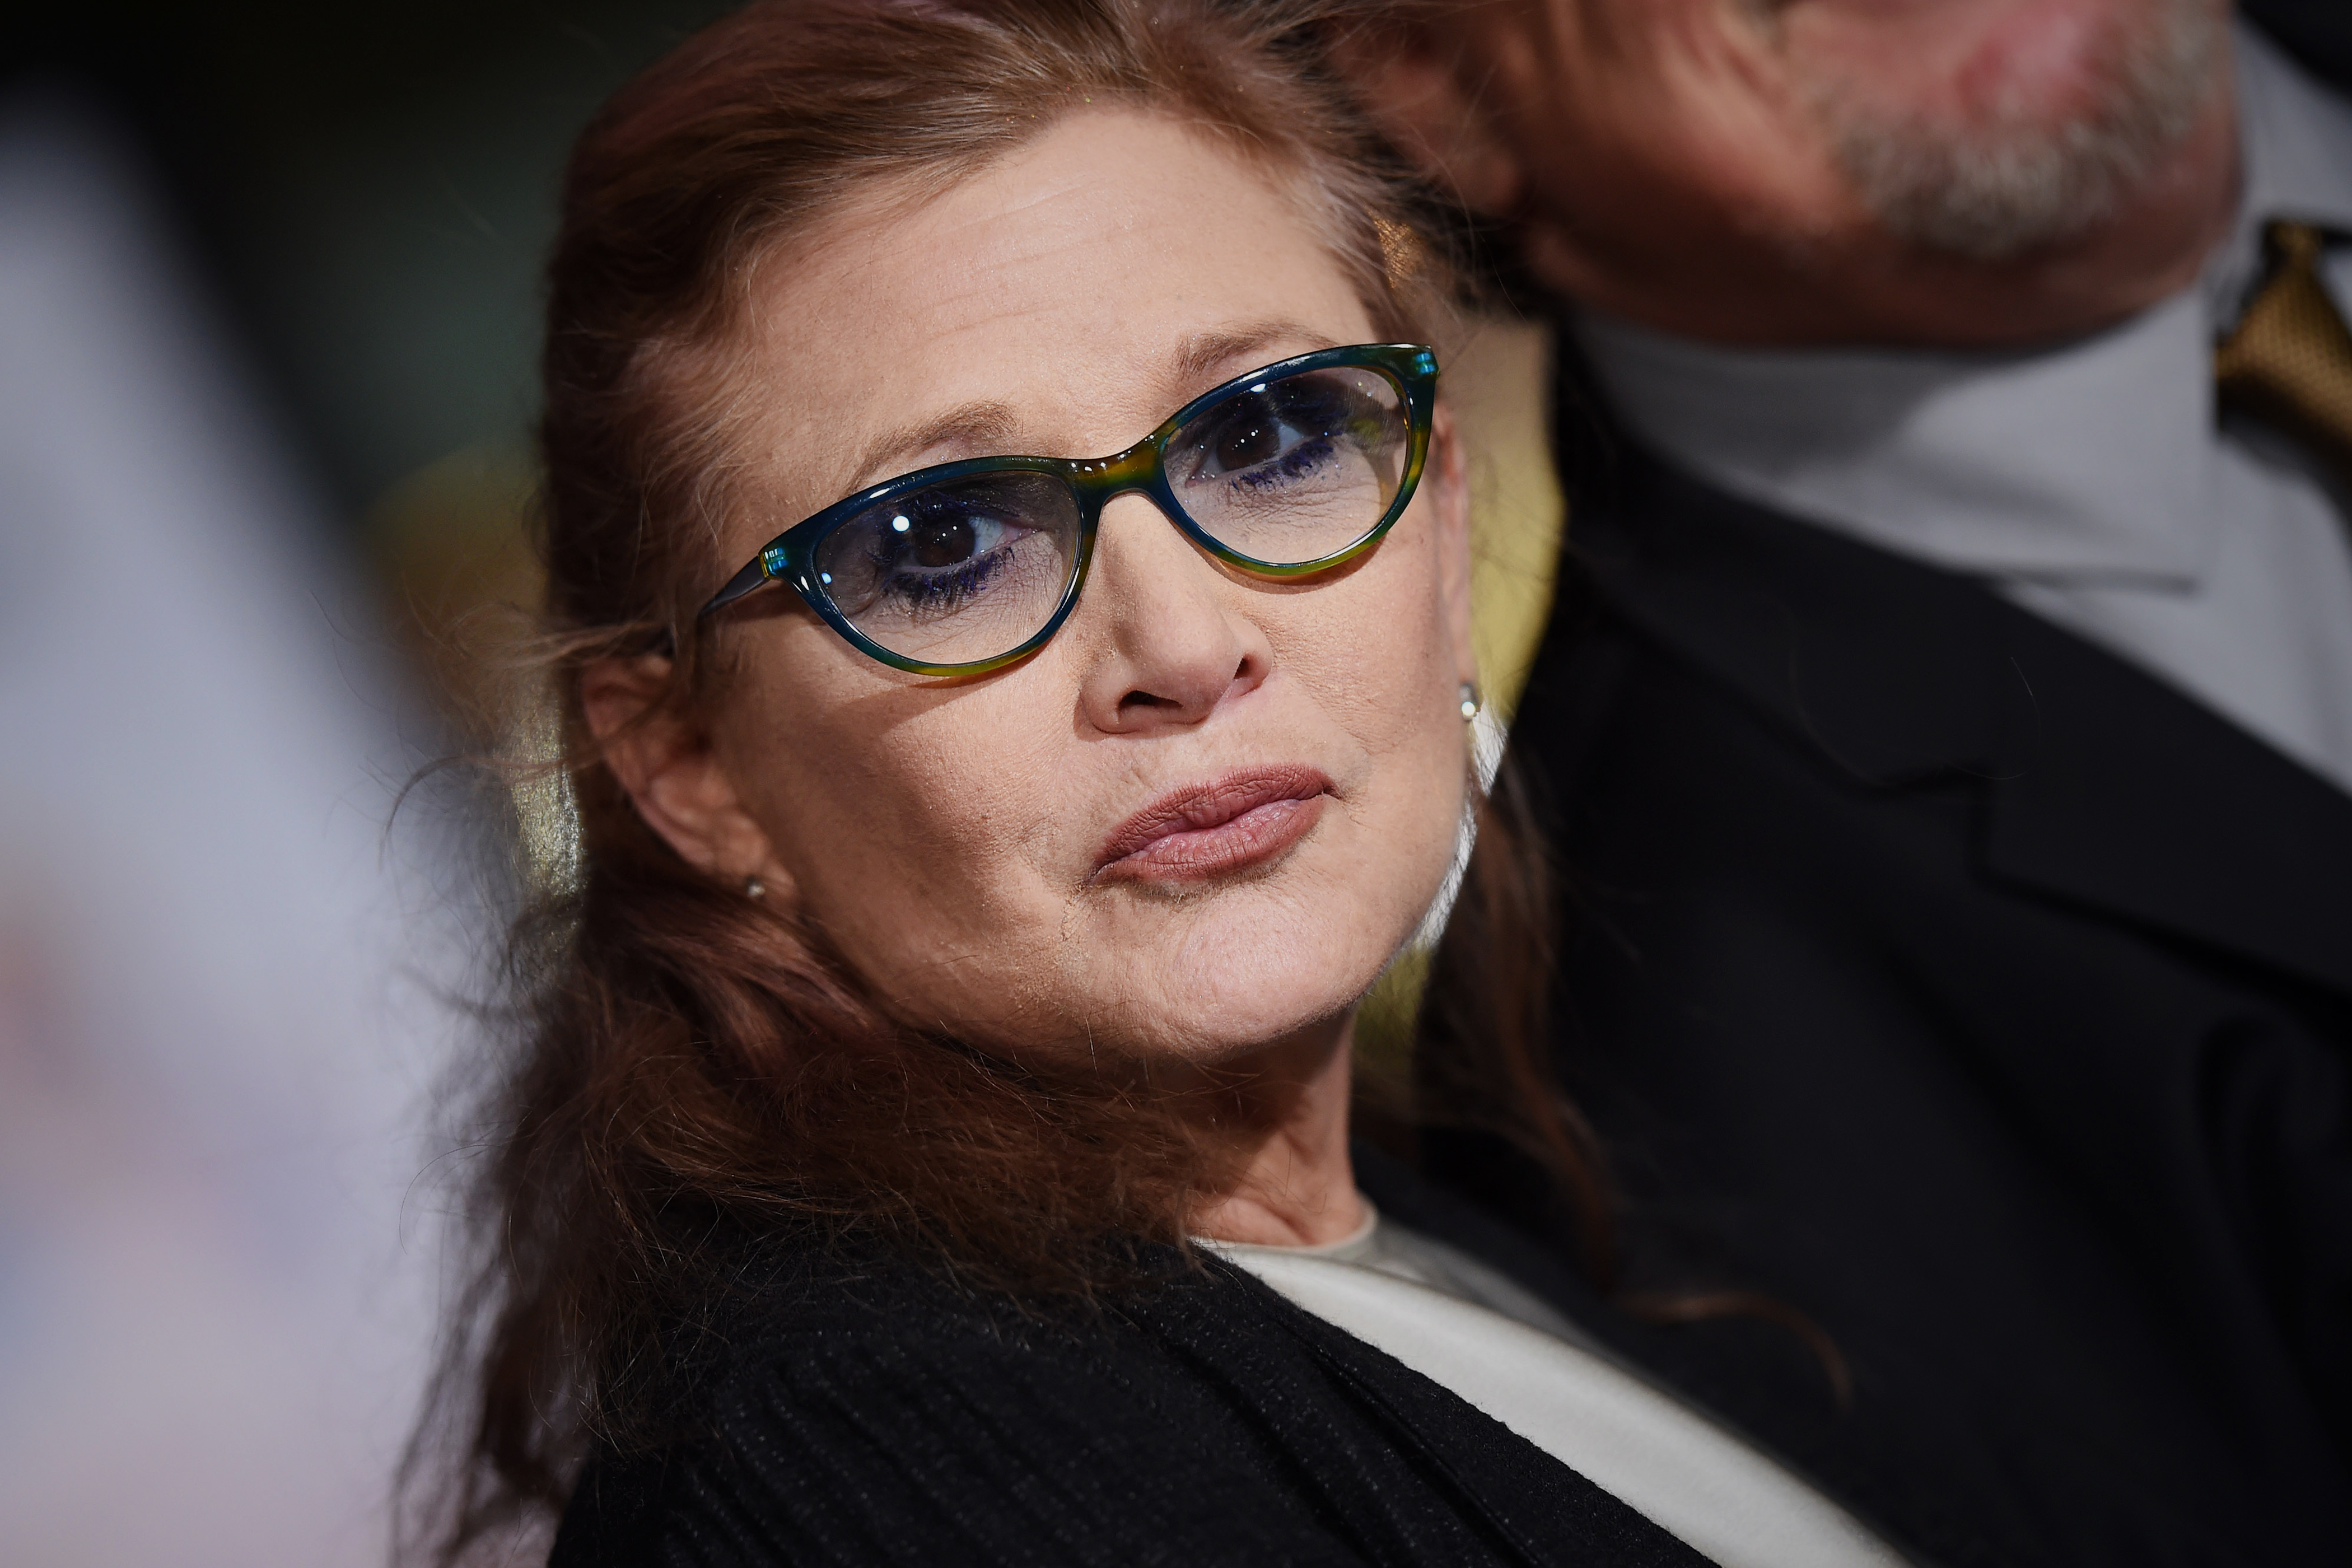 Awakens Porn Tumblr carrie fisher on 'the force awakens': 'i've always been in